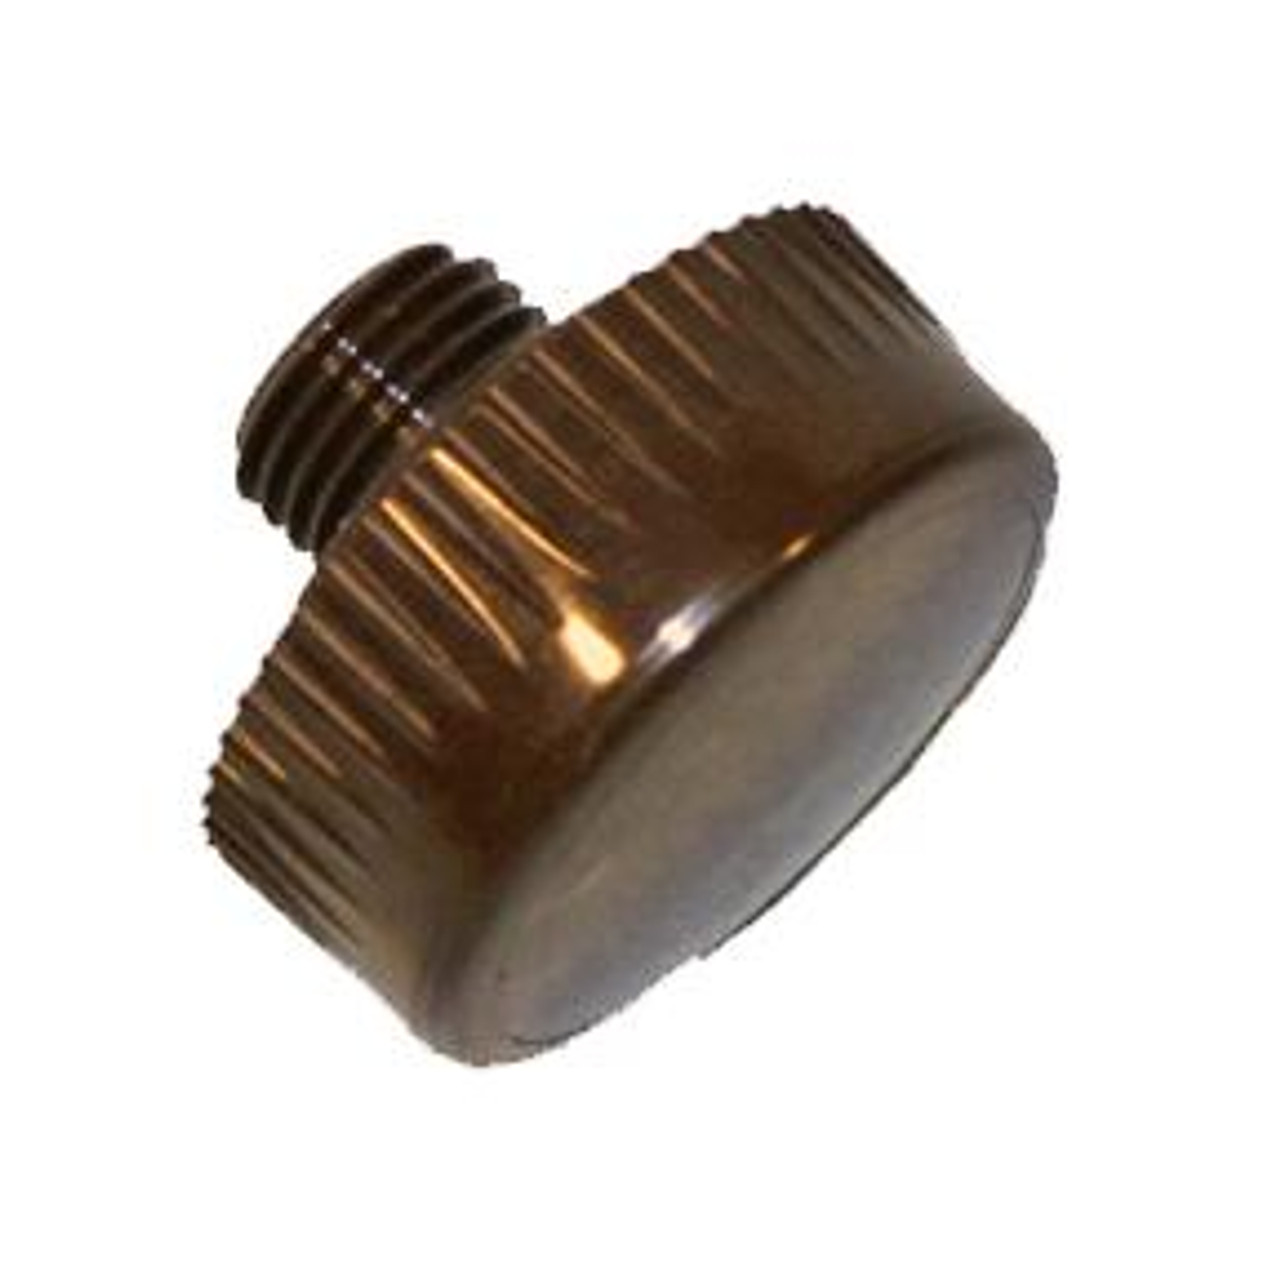 Thor Tough Brown replacement tip for NT and DB hammers. One tip.